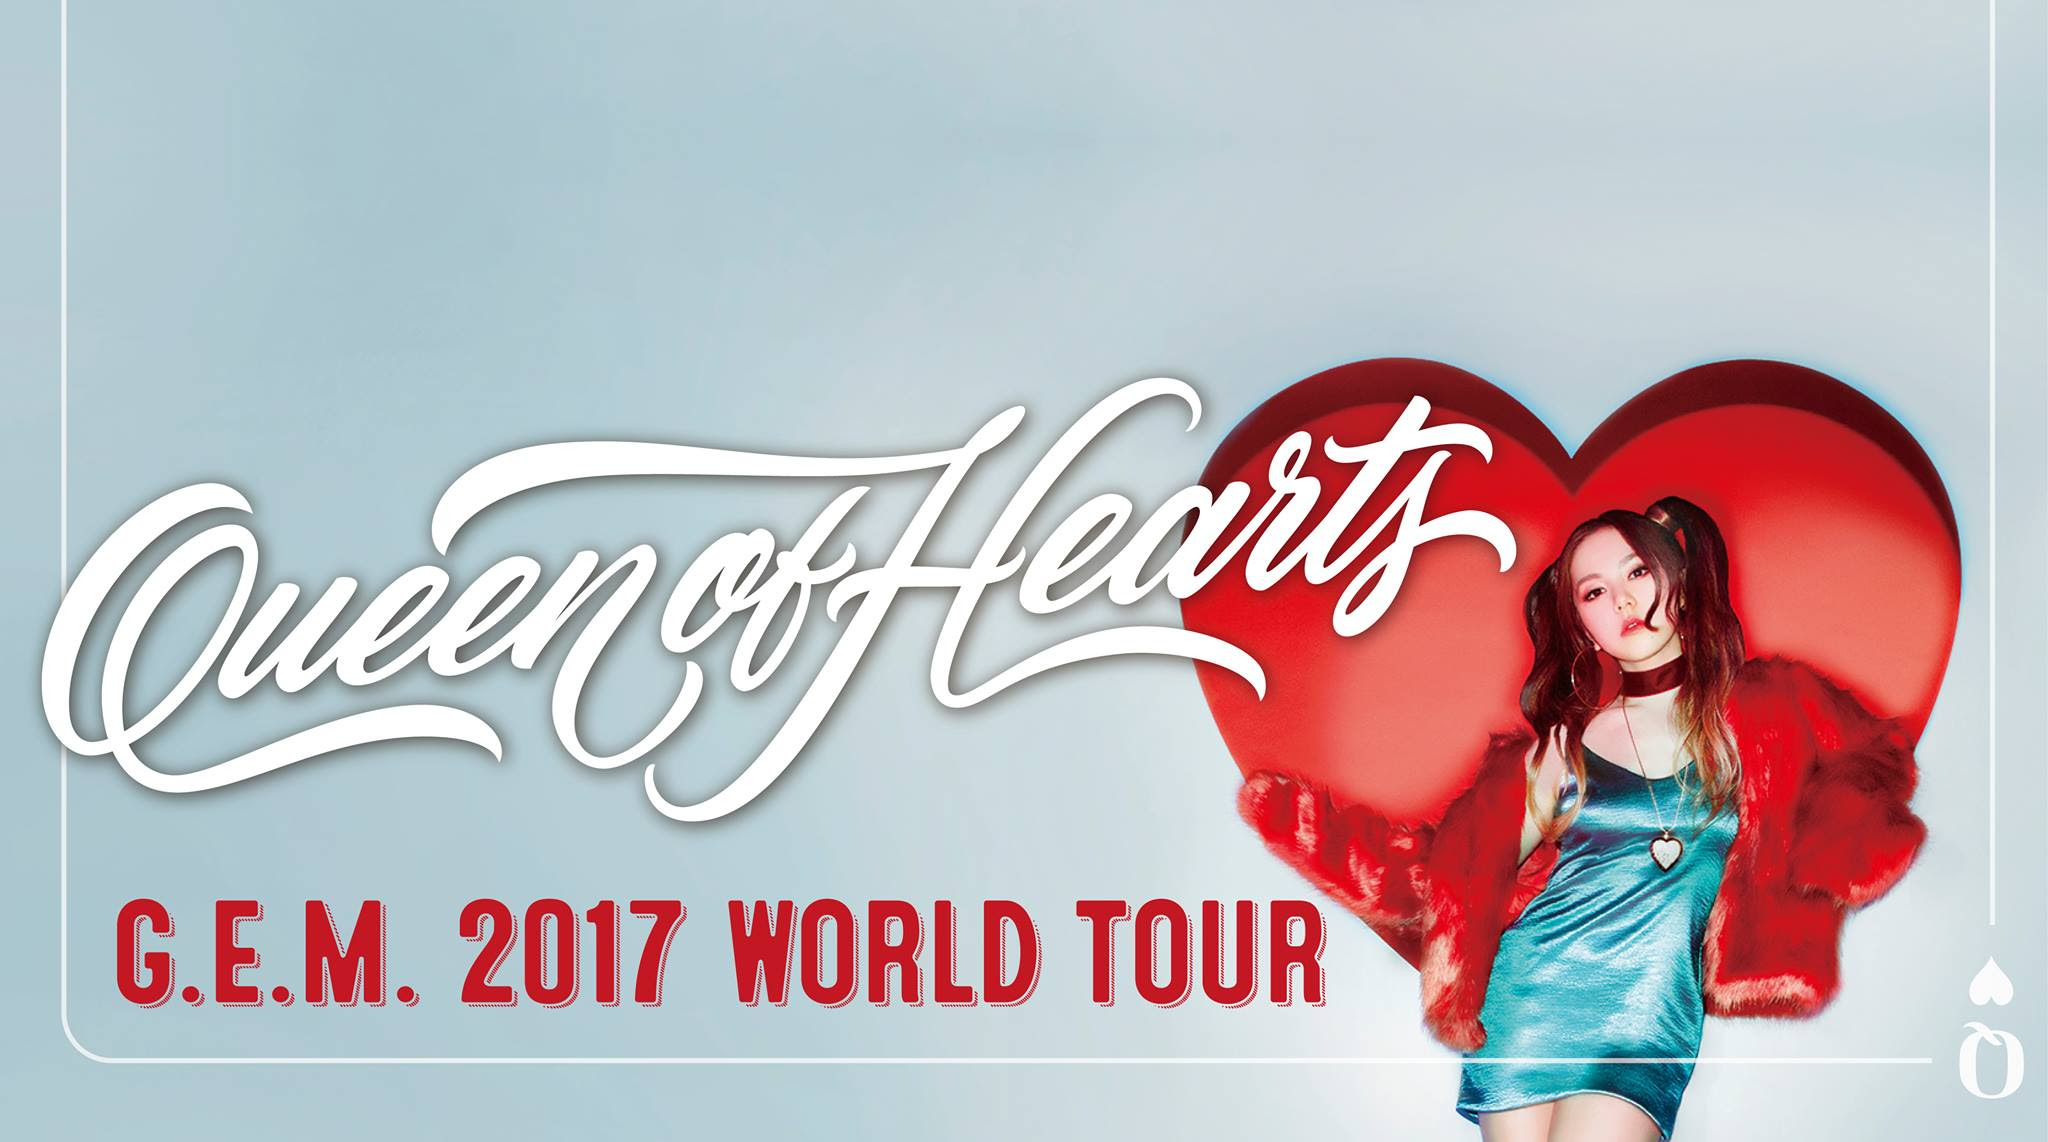 G.E.M. Tang announces Australian concert dates for 'Queen of Hearts' World Tour